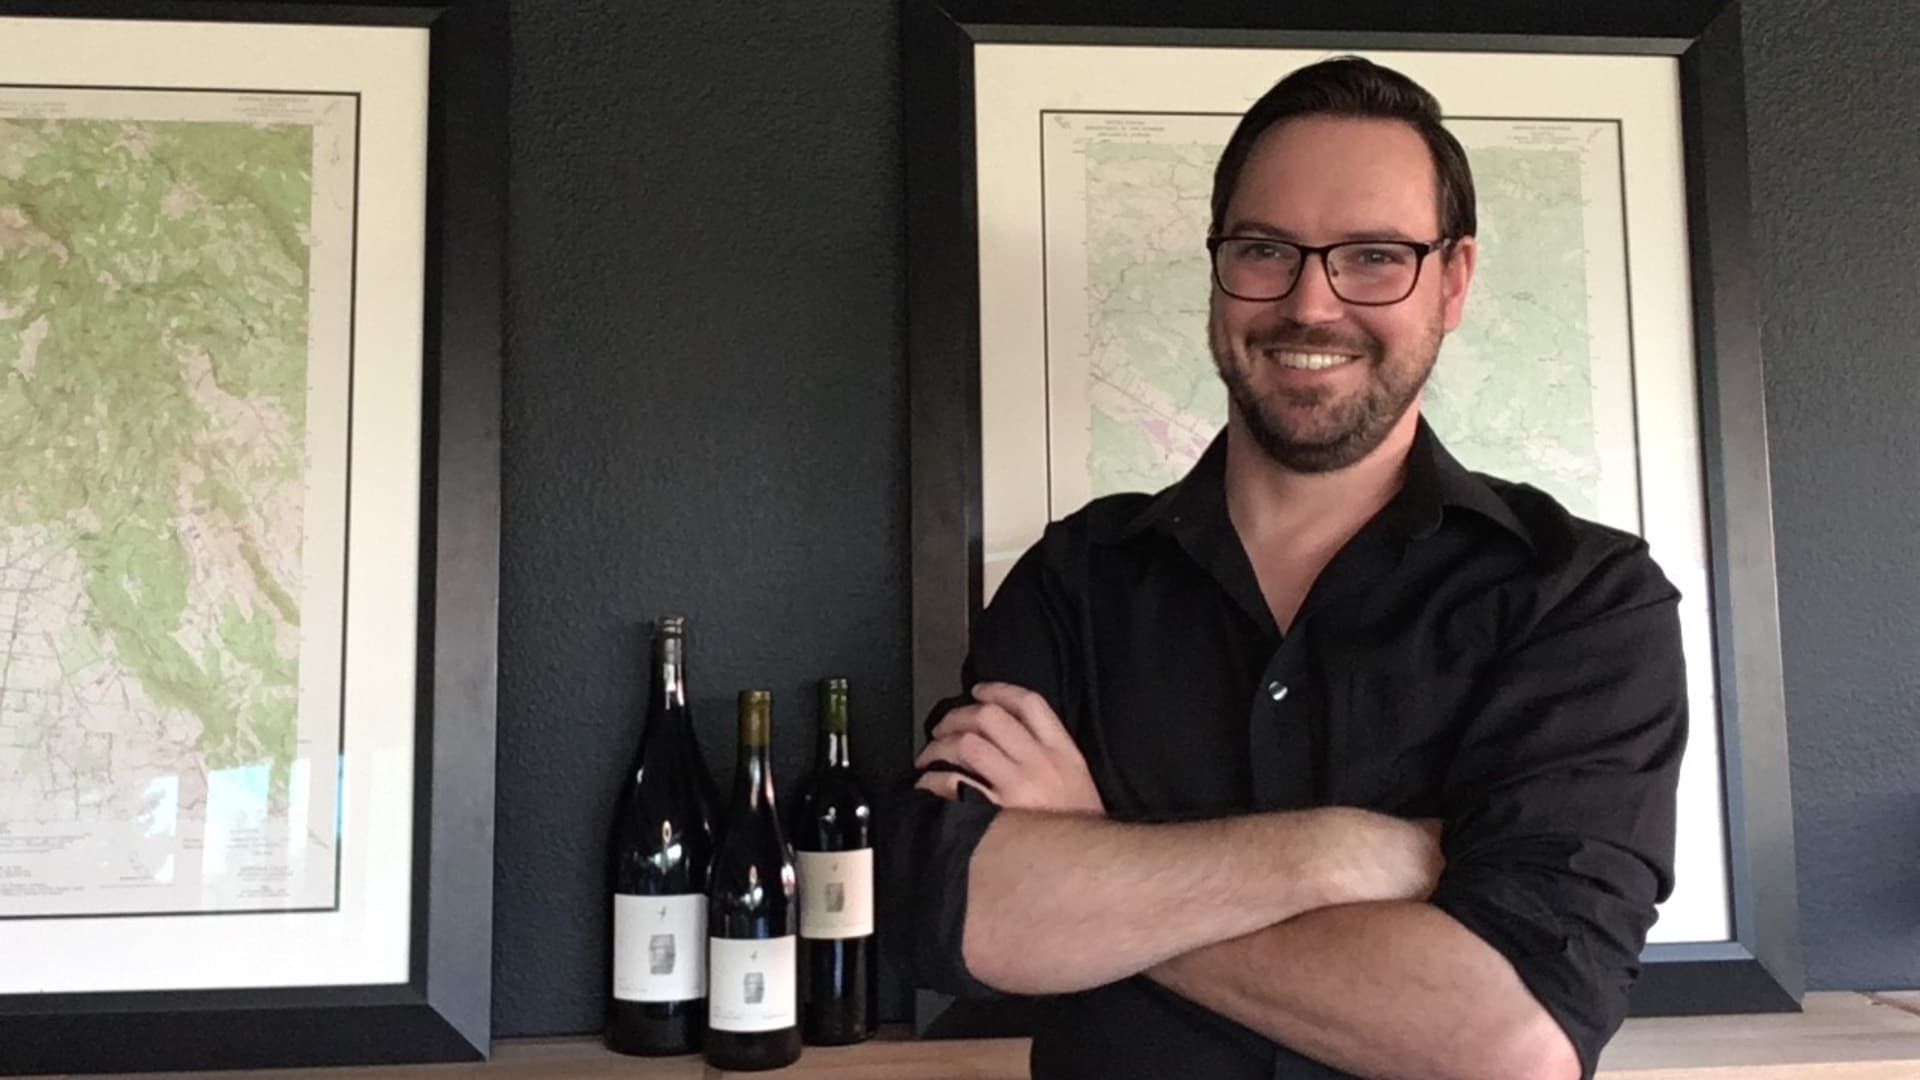 Ian O'Reilly moved to Napa Valley without a job; he now holds two positions in the wine industry.